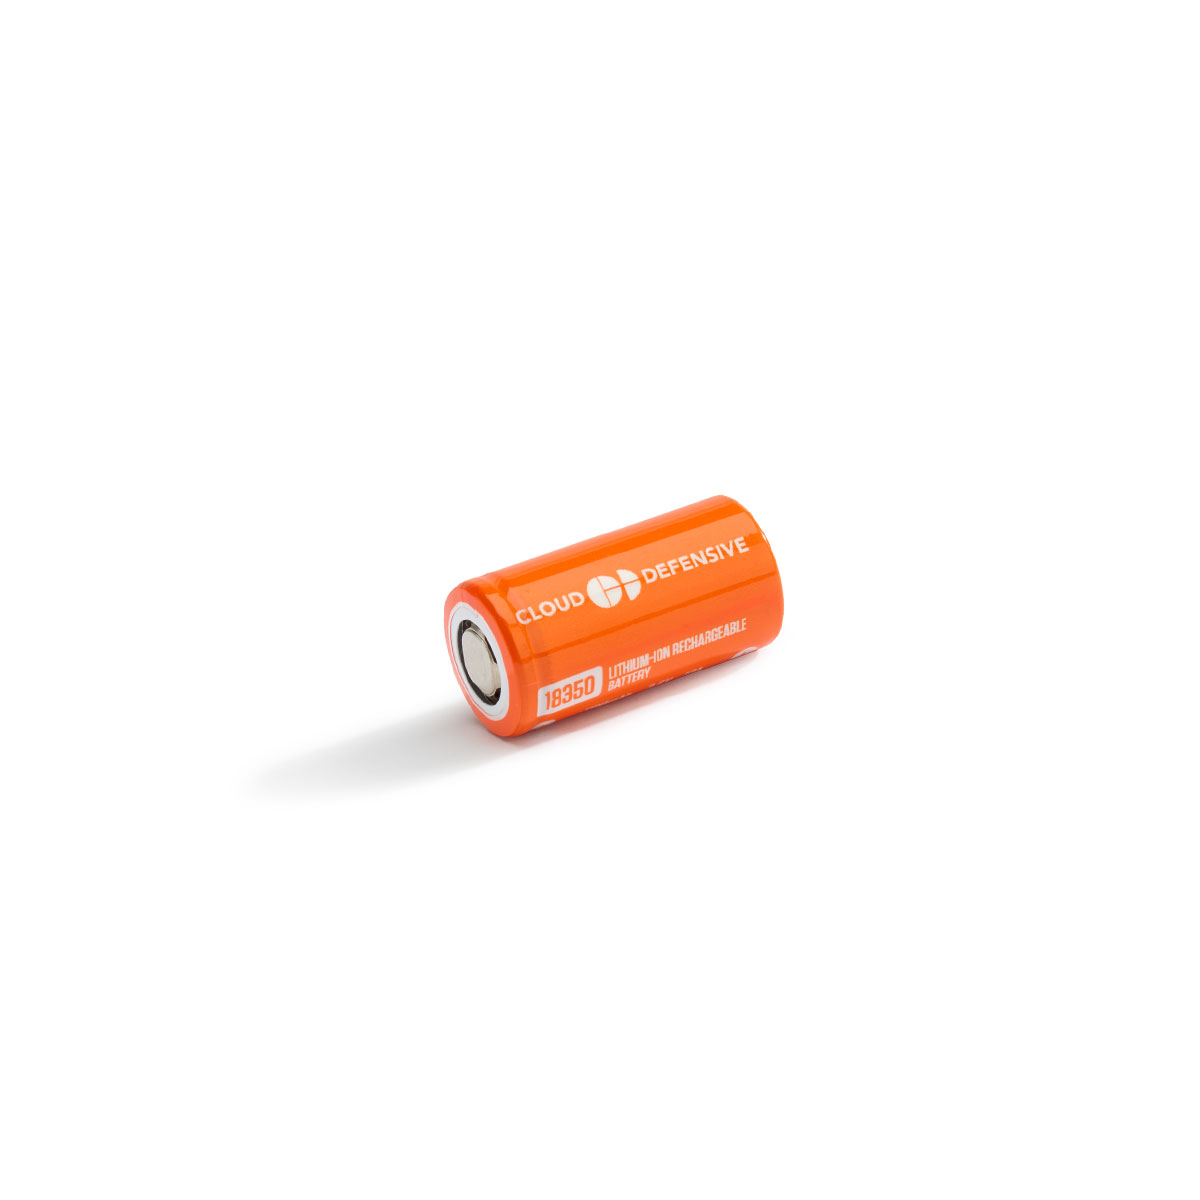 Cloud Defensive 18350 Rechargeable Battery